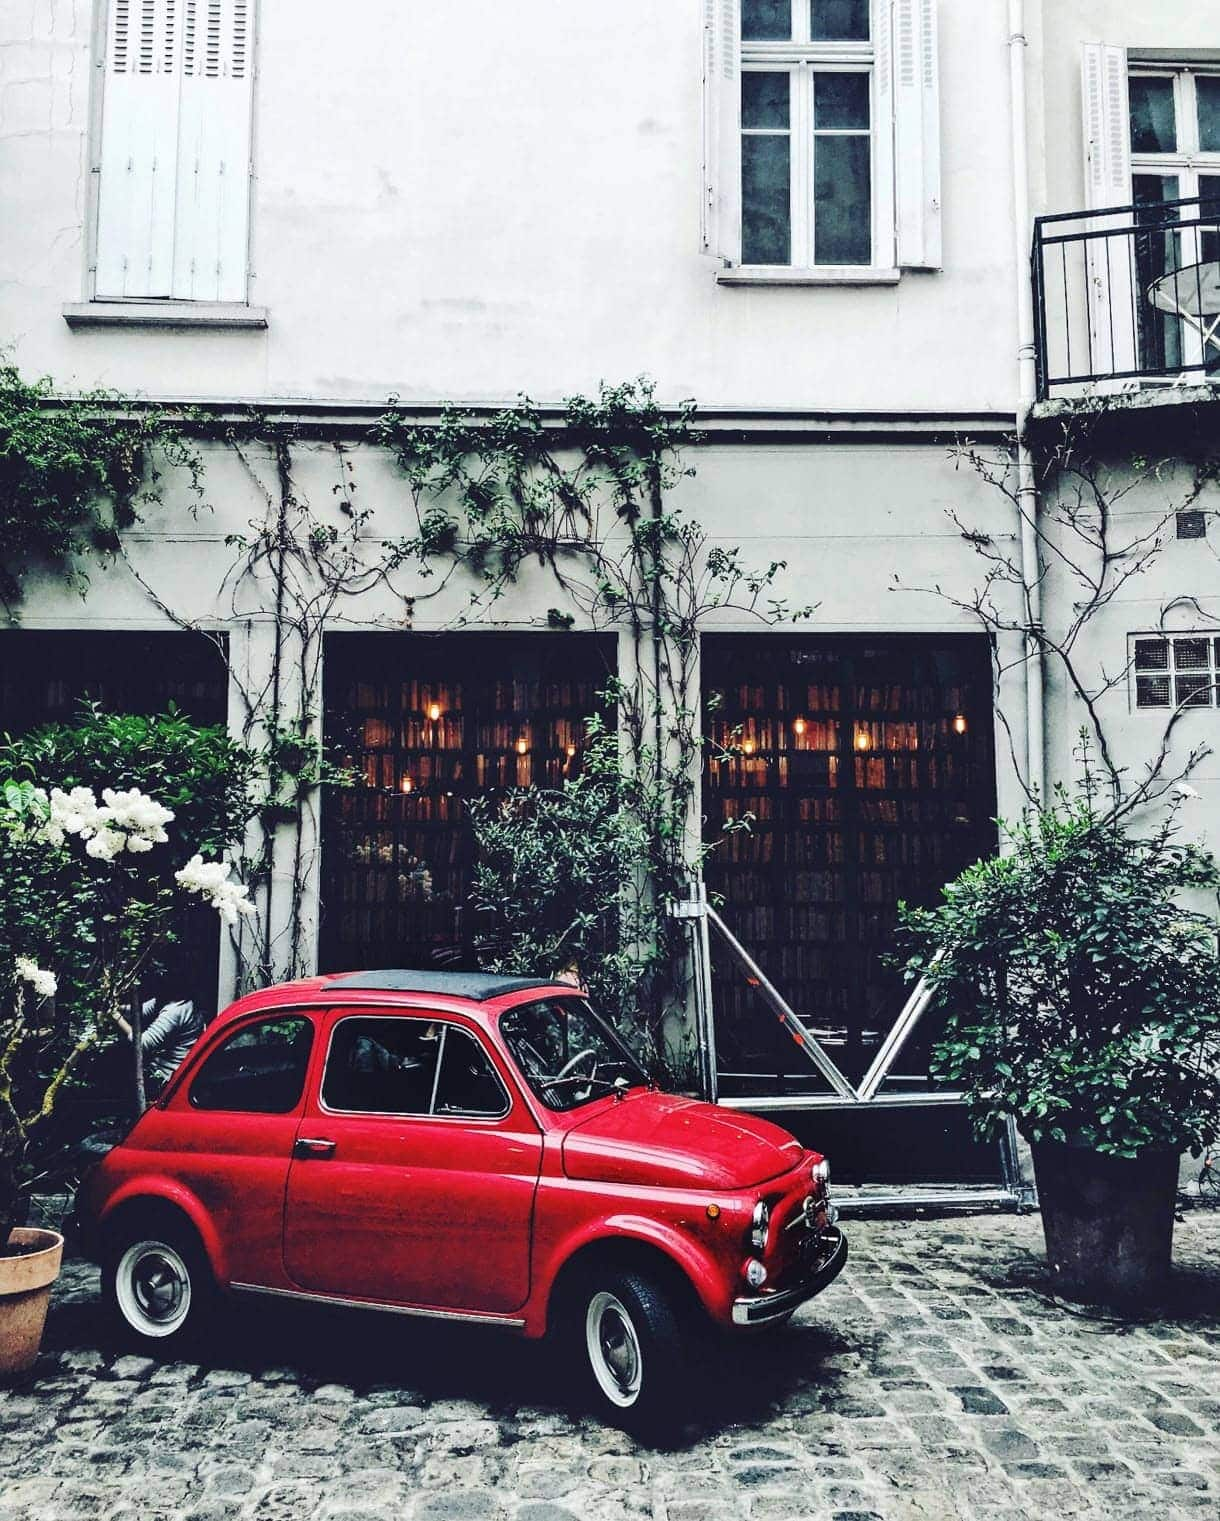 A Paris vacation without plans: Merci home store - Paris - red fiat in Paris - french fiat